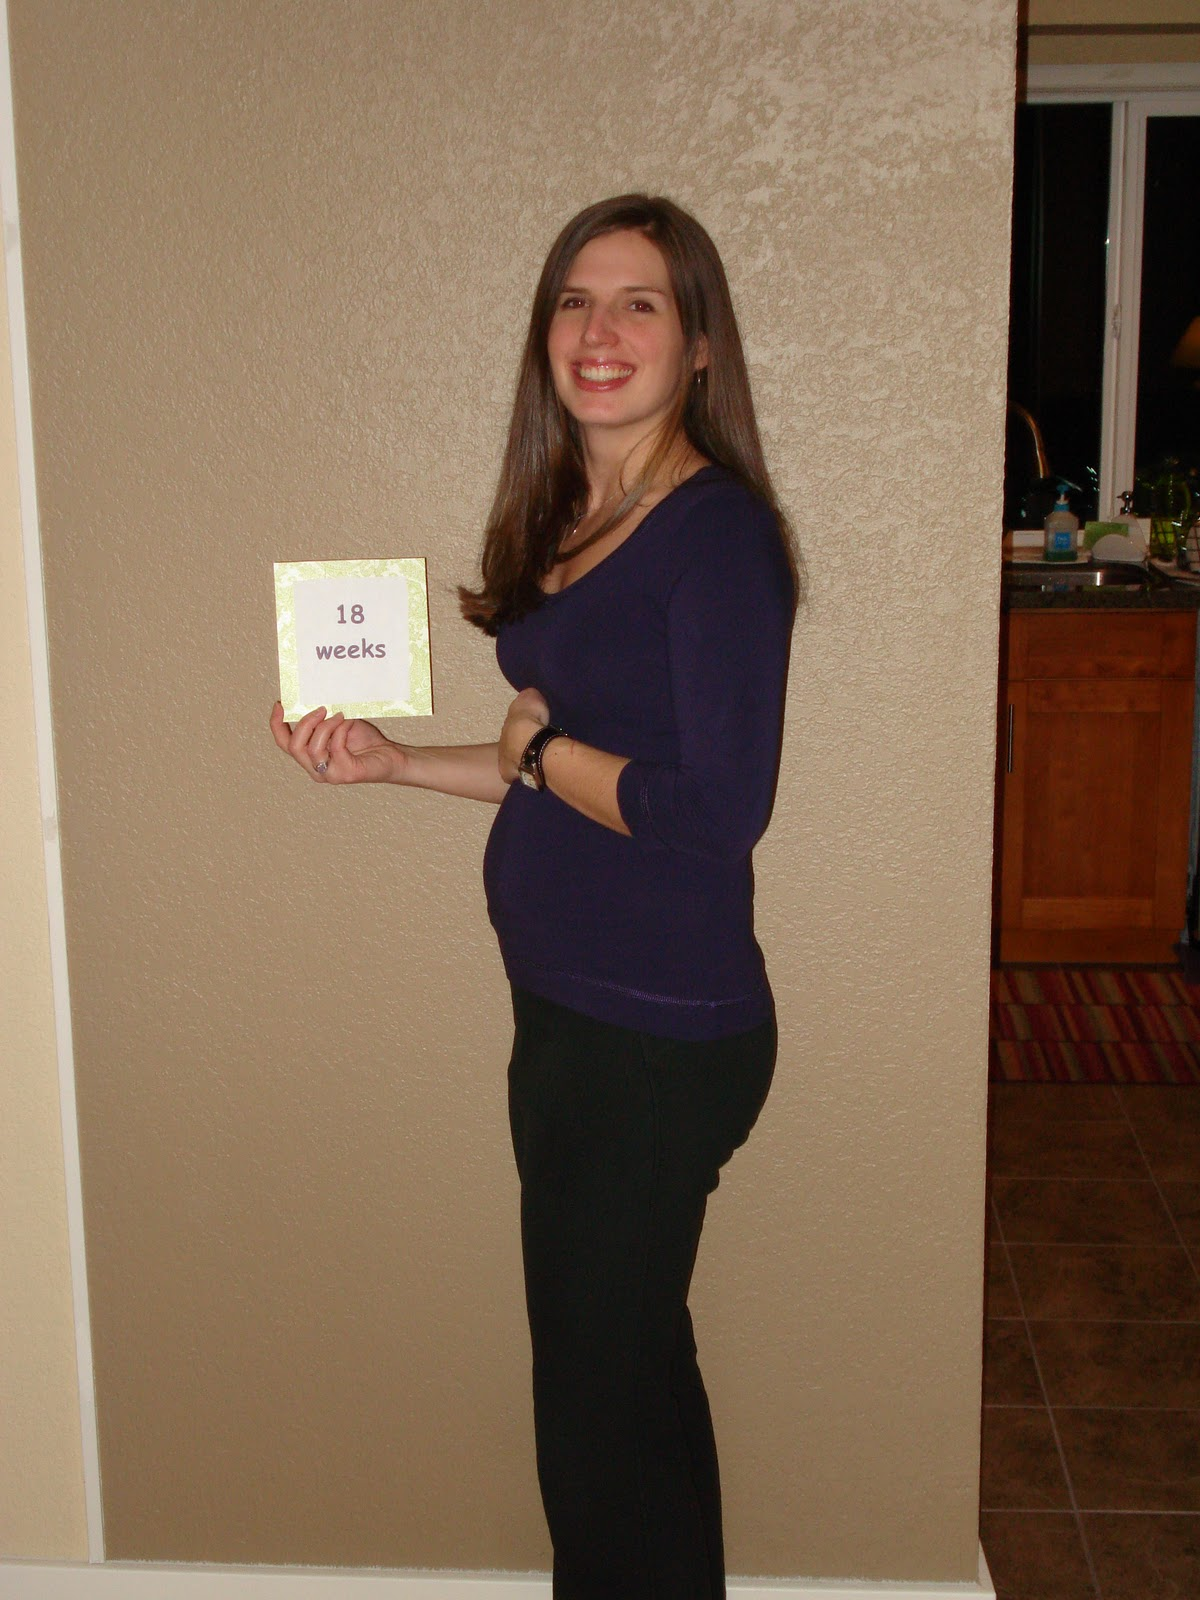 Christen Family: 18 weeks Pregnant- December 5, 2010